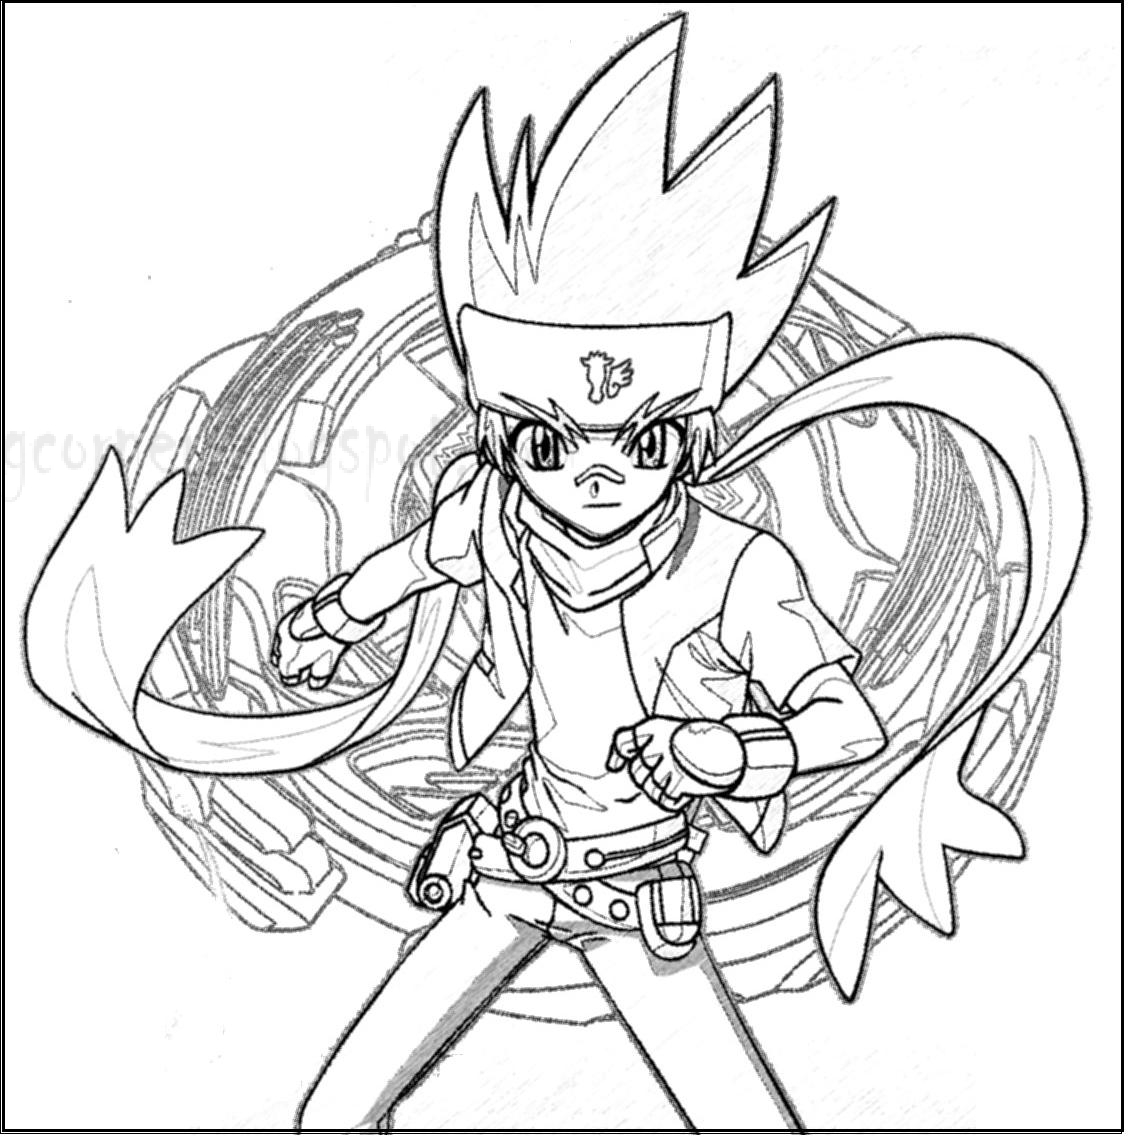 El Drago Beyblade Coloring http://printablecolouringpages.co.uk/?s=L-drago&page=1